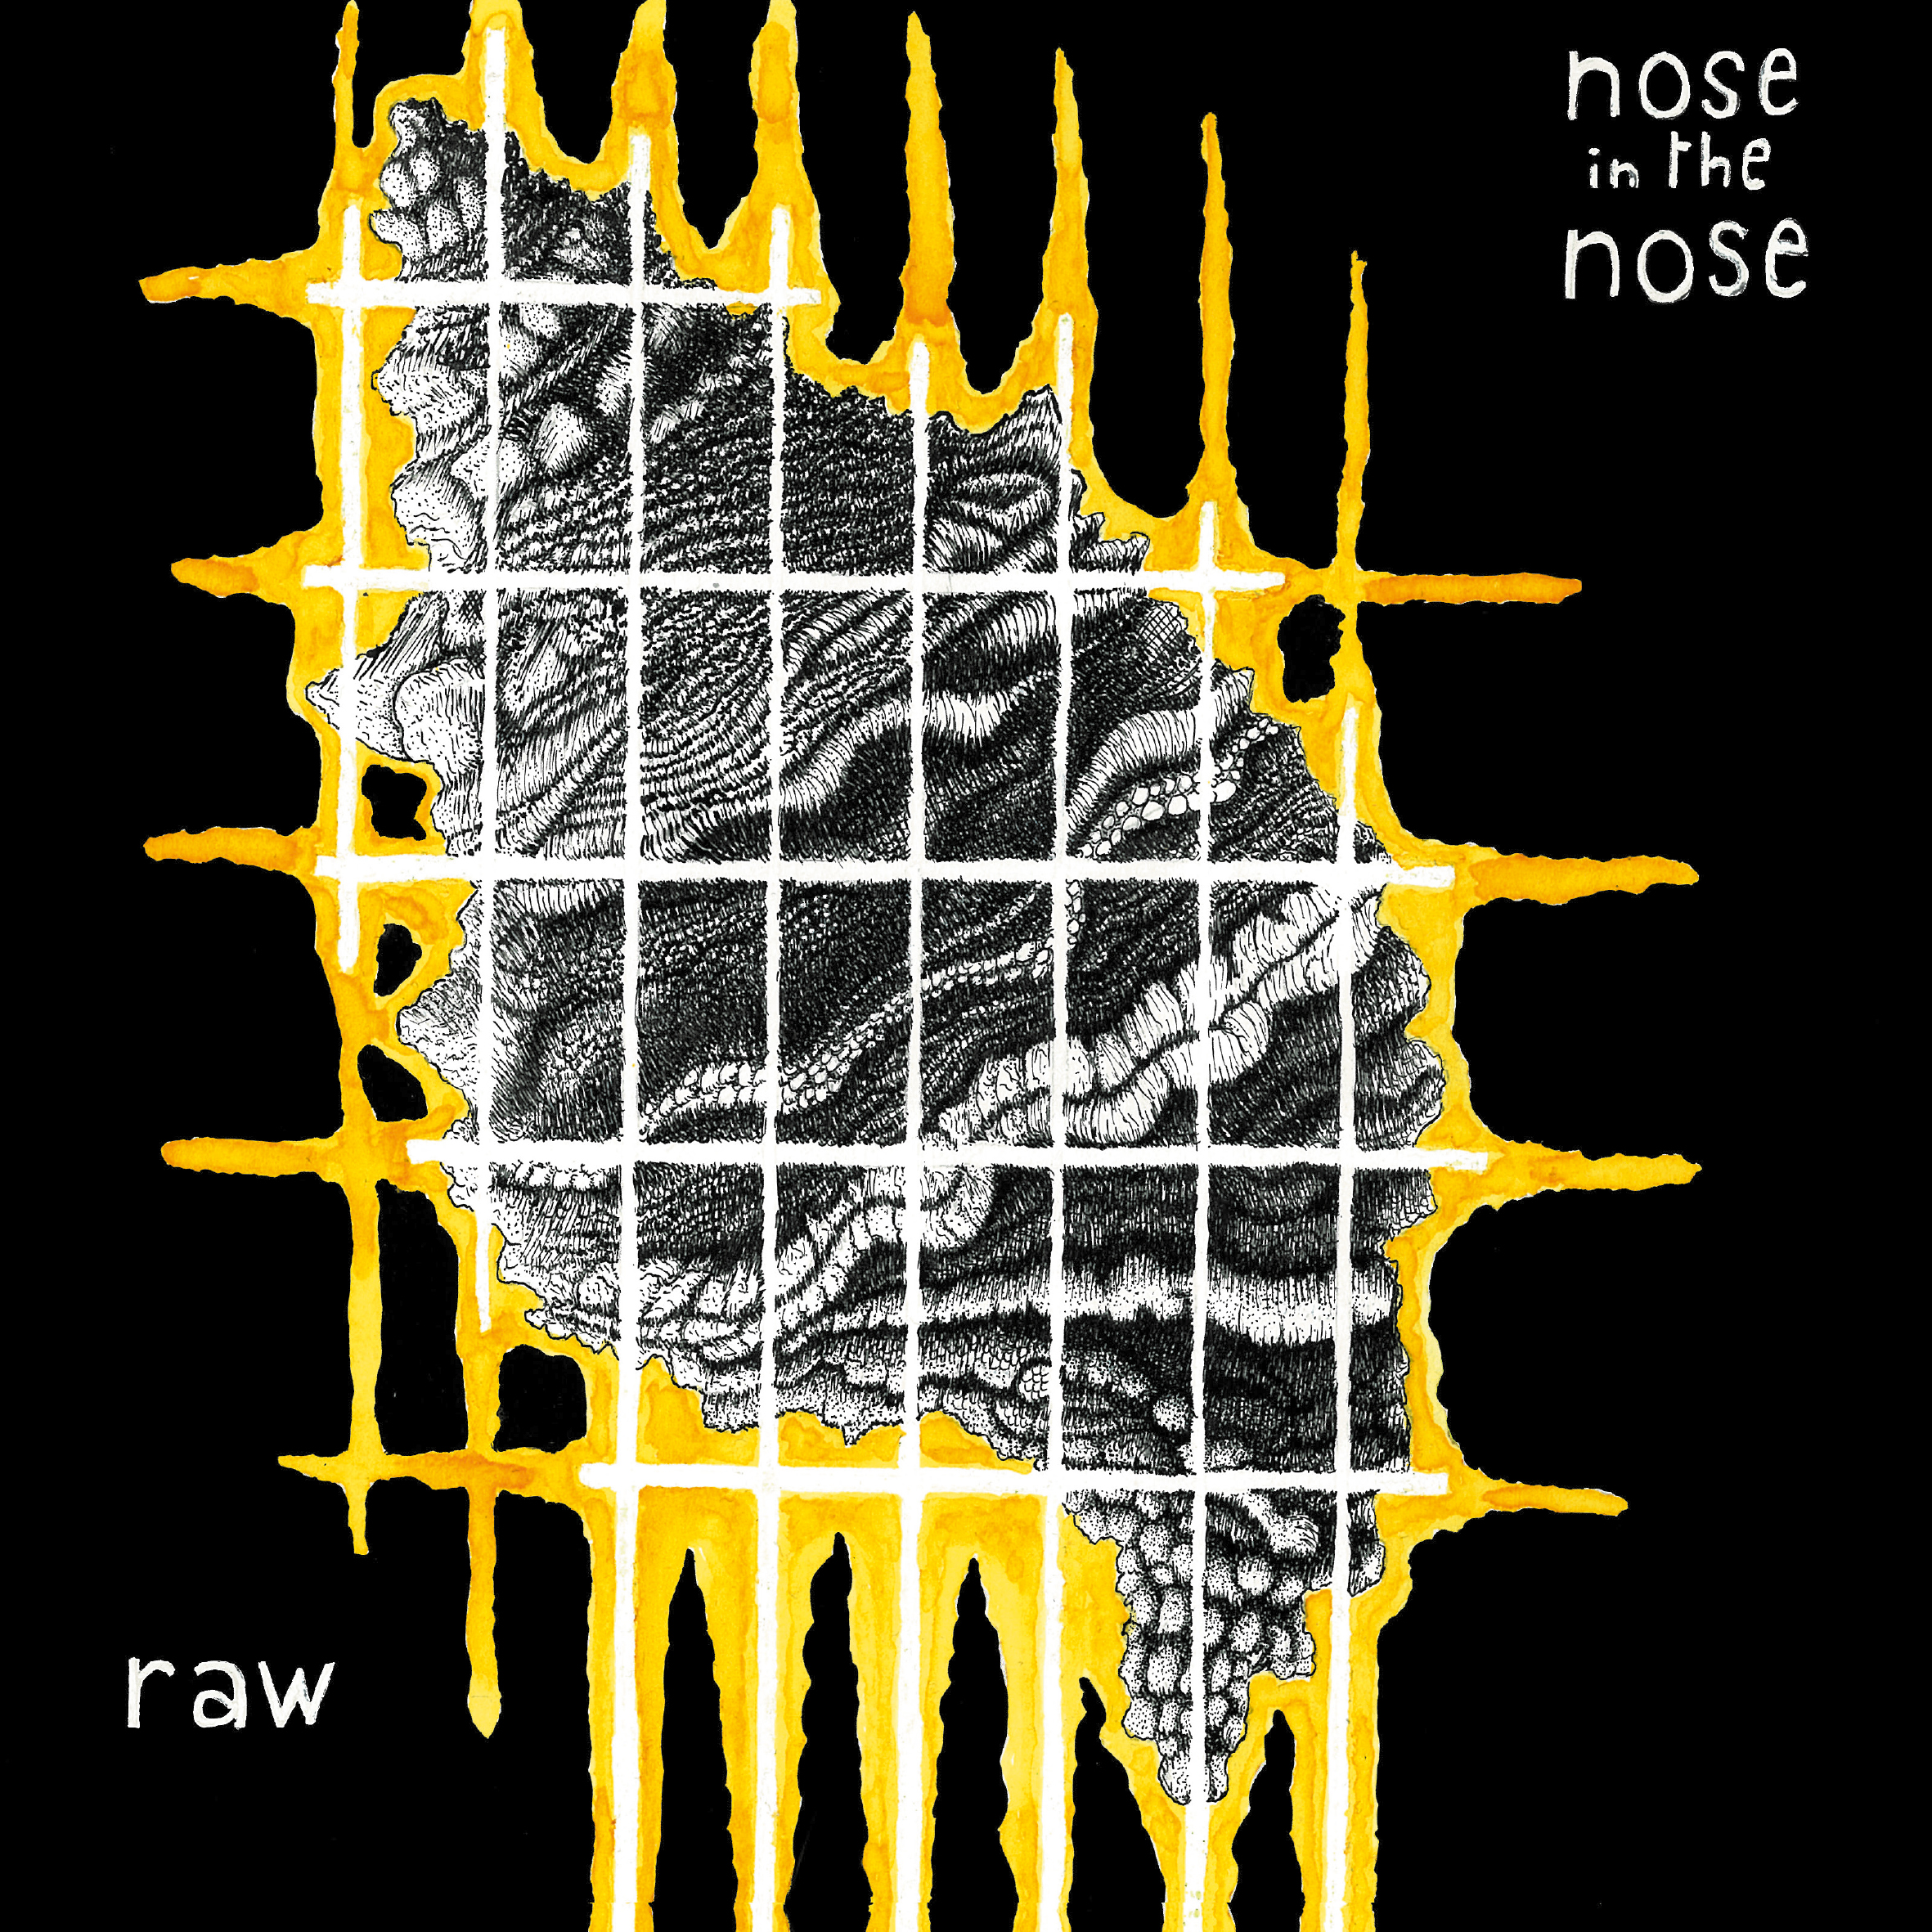 [VOX39] NOSE IN THE NOSE - Raw